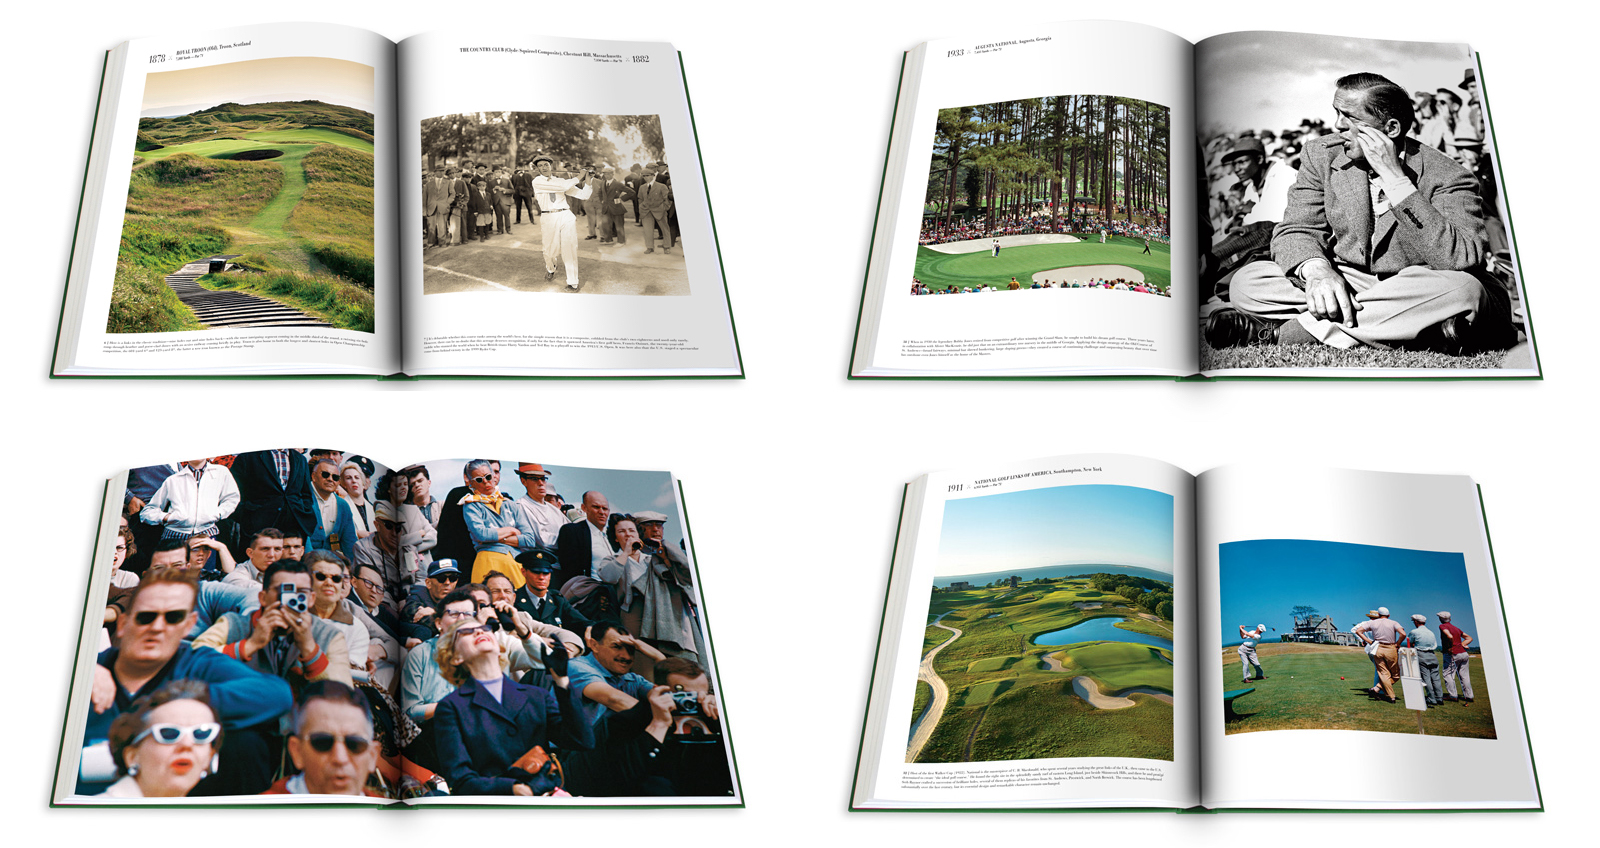 Author George Peper's most recent addition to Assouline Publishing's highly coveted limited edition Ultimate Collection